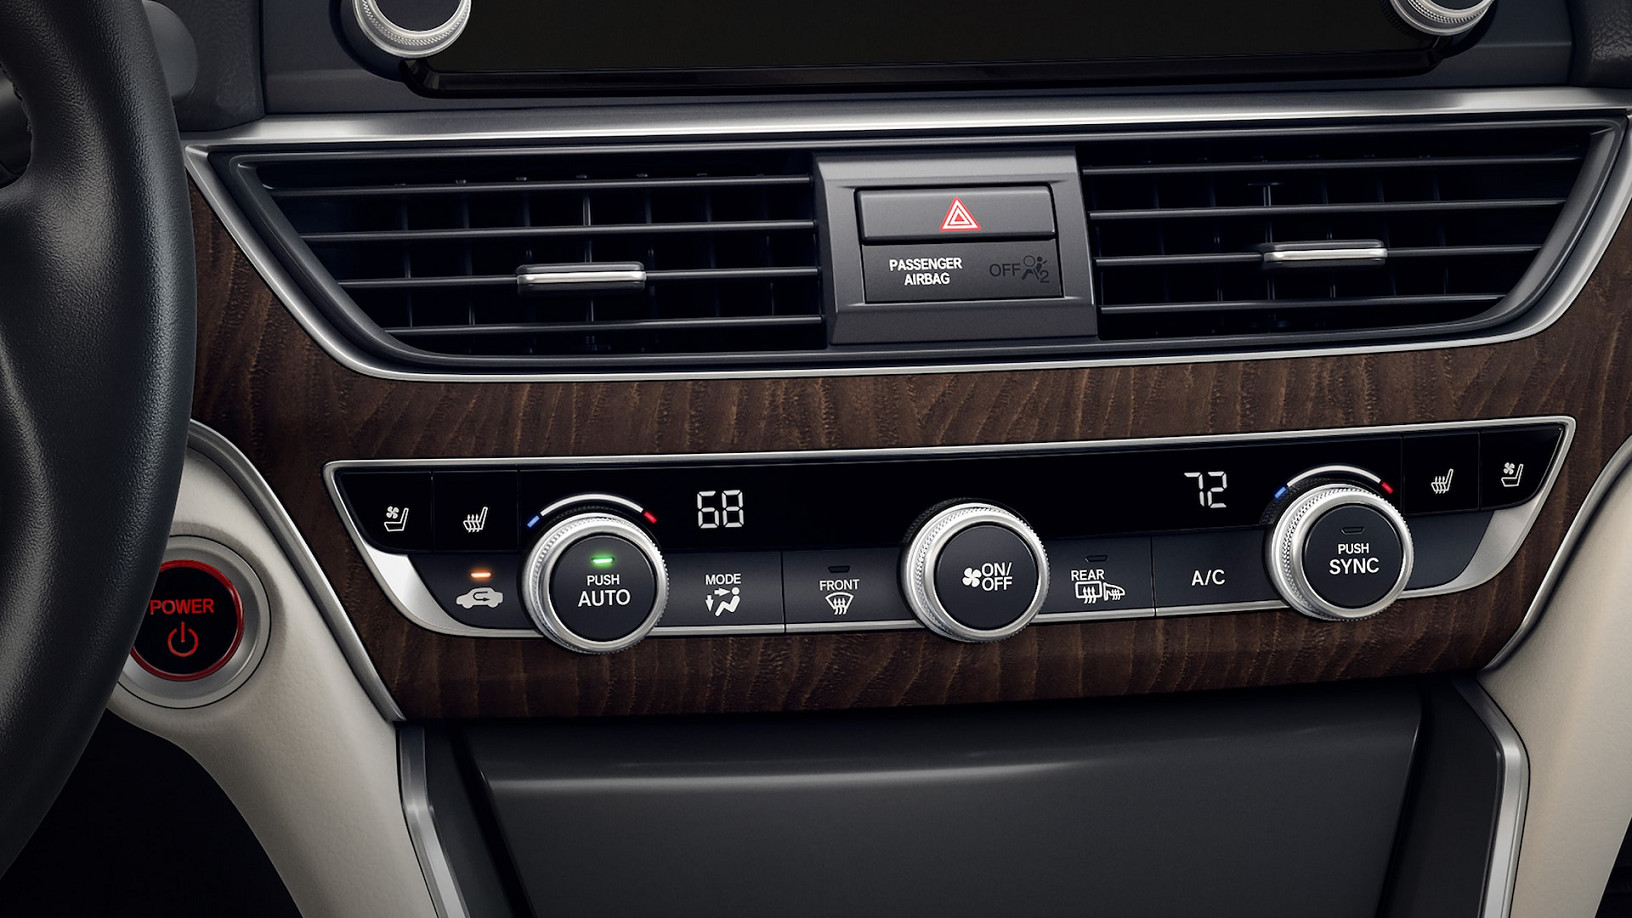 Dual-Zone Climate Control in the 2020 Accord